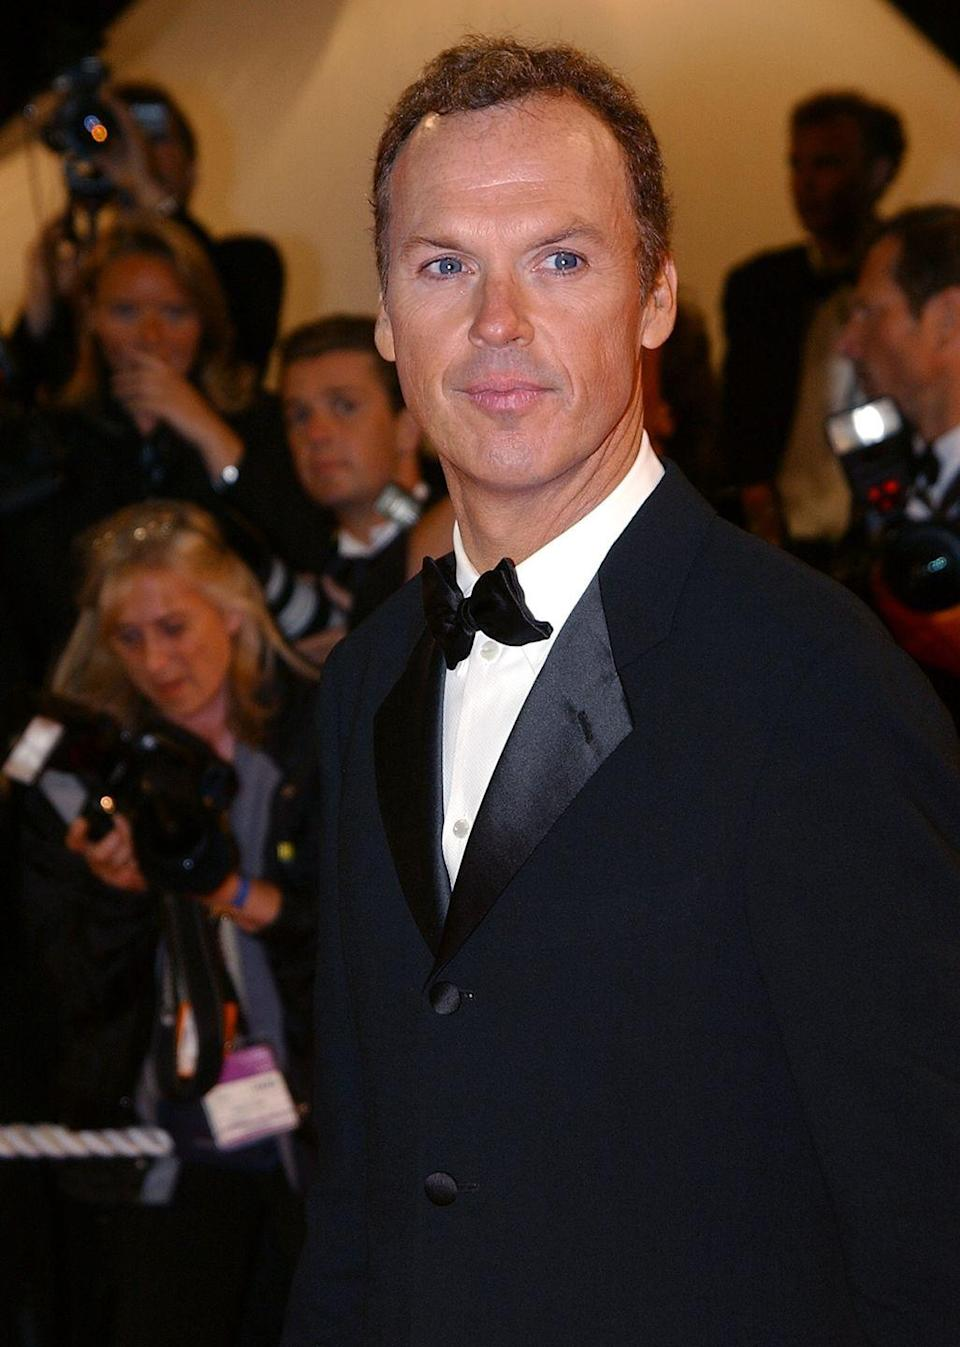 <p>Michael Keaton flashed a smile as he arrived on the red carpet of the Cannes Film Festival, sporting his signature short brown hair in 2002. </p>